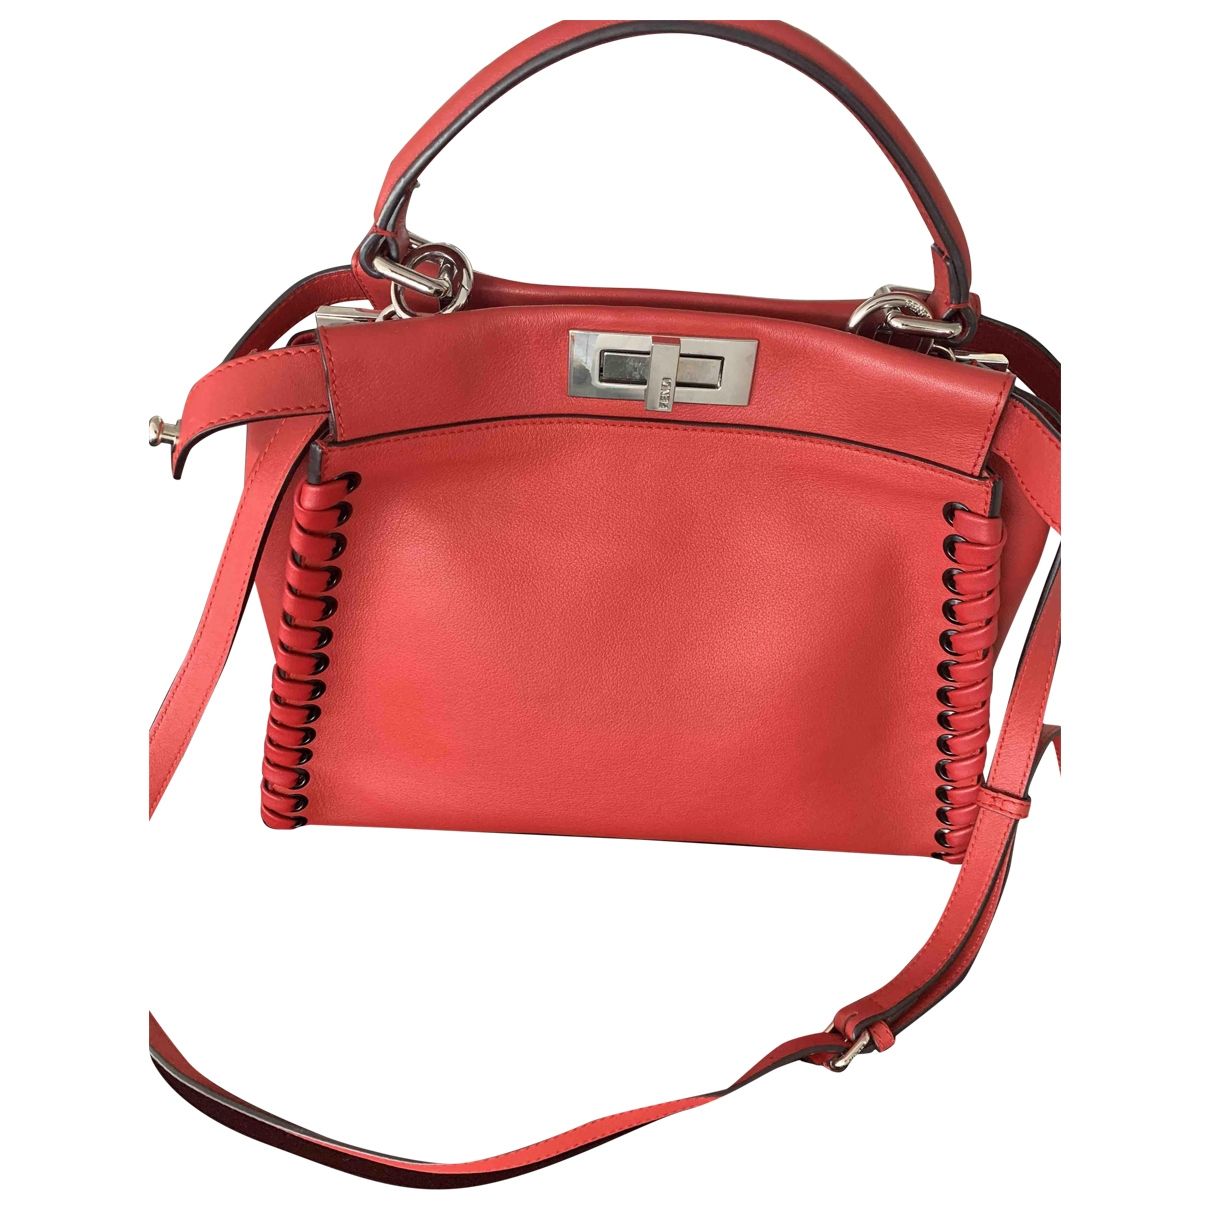 Fendi Peekaboo Red Leather handbag for Women \N